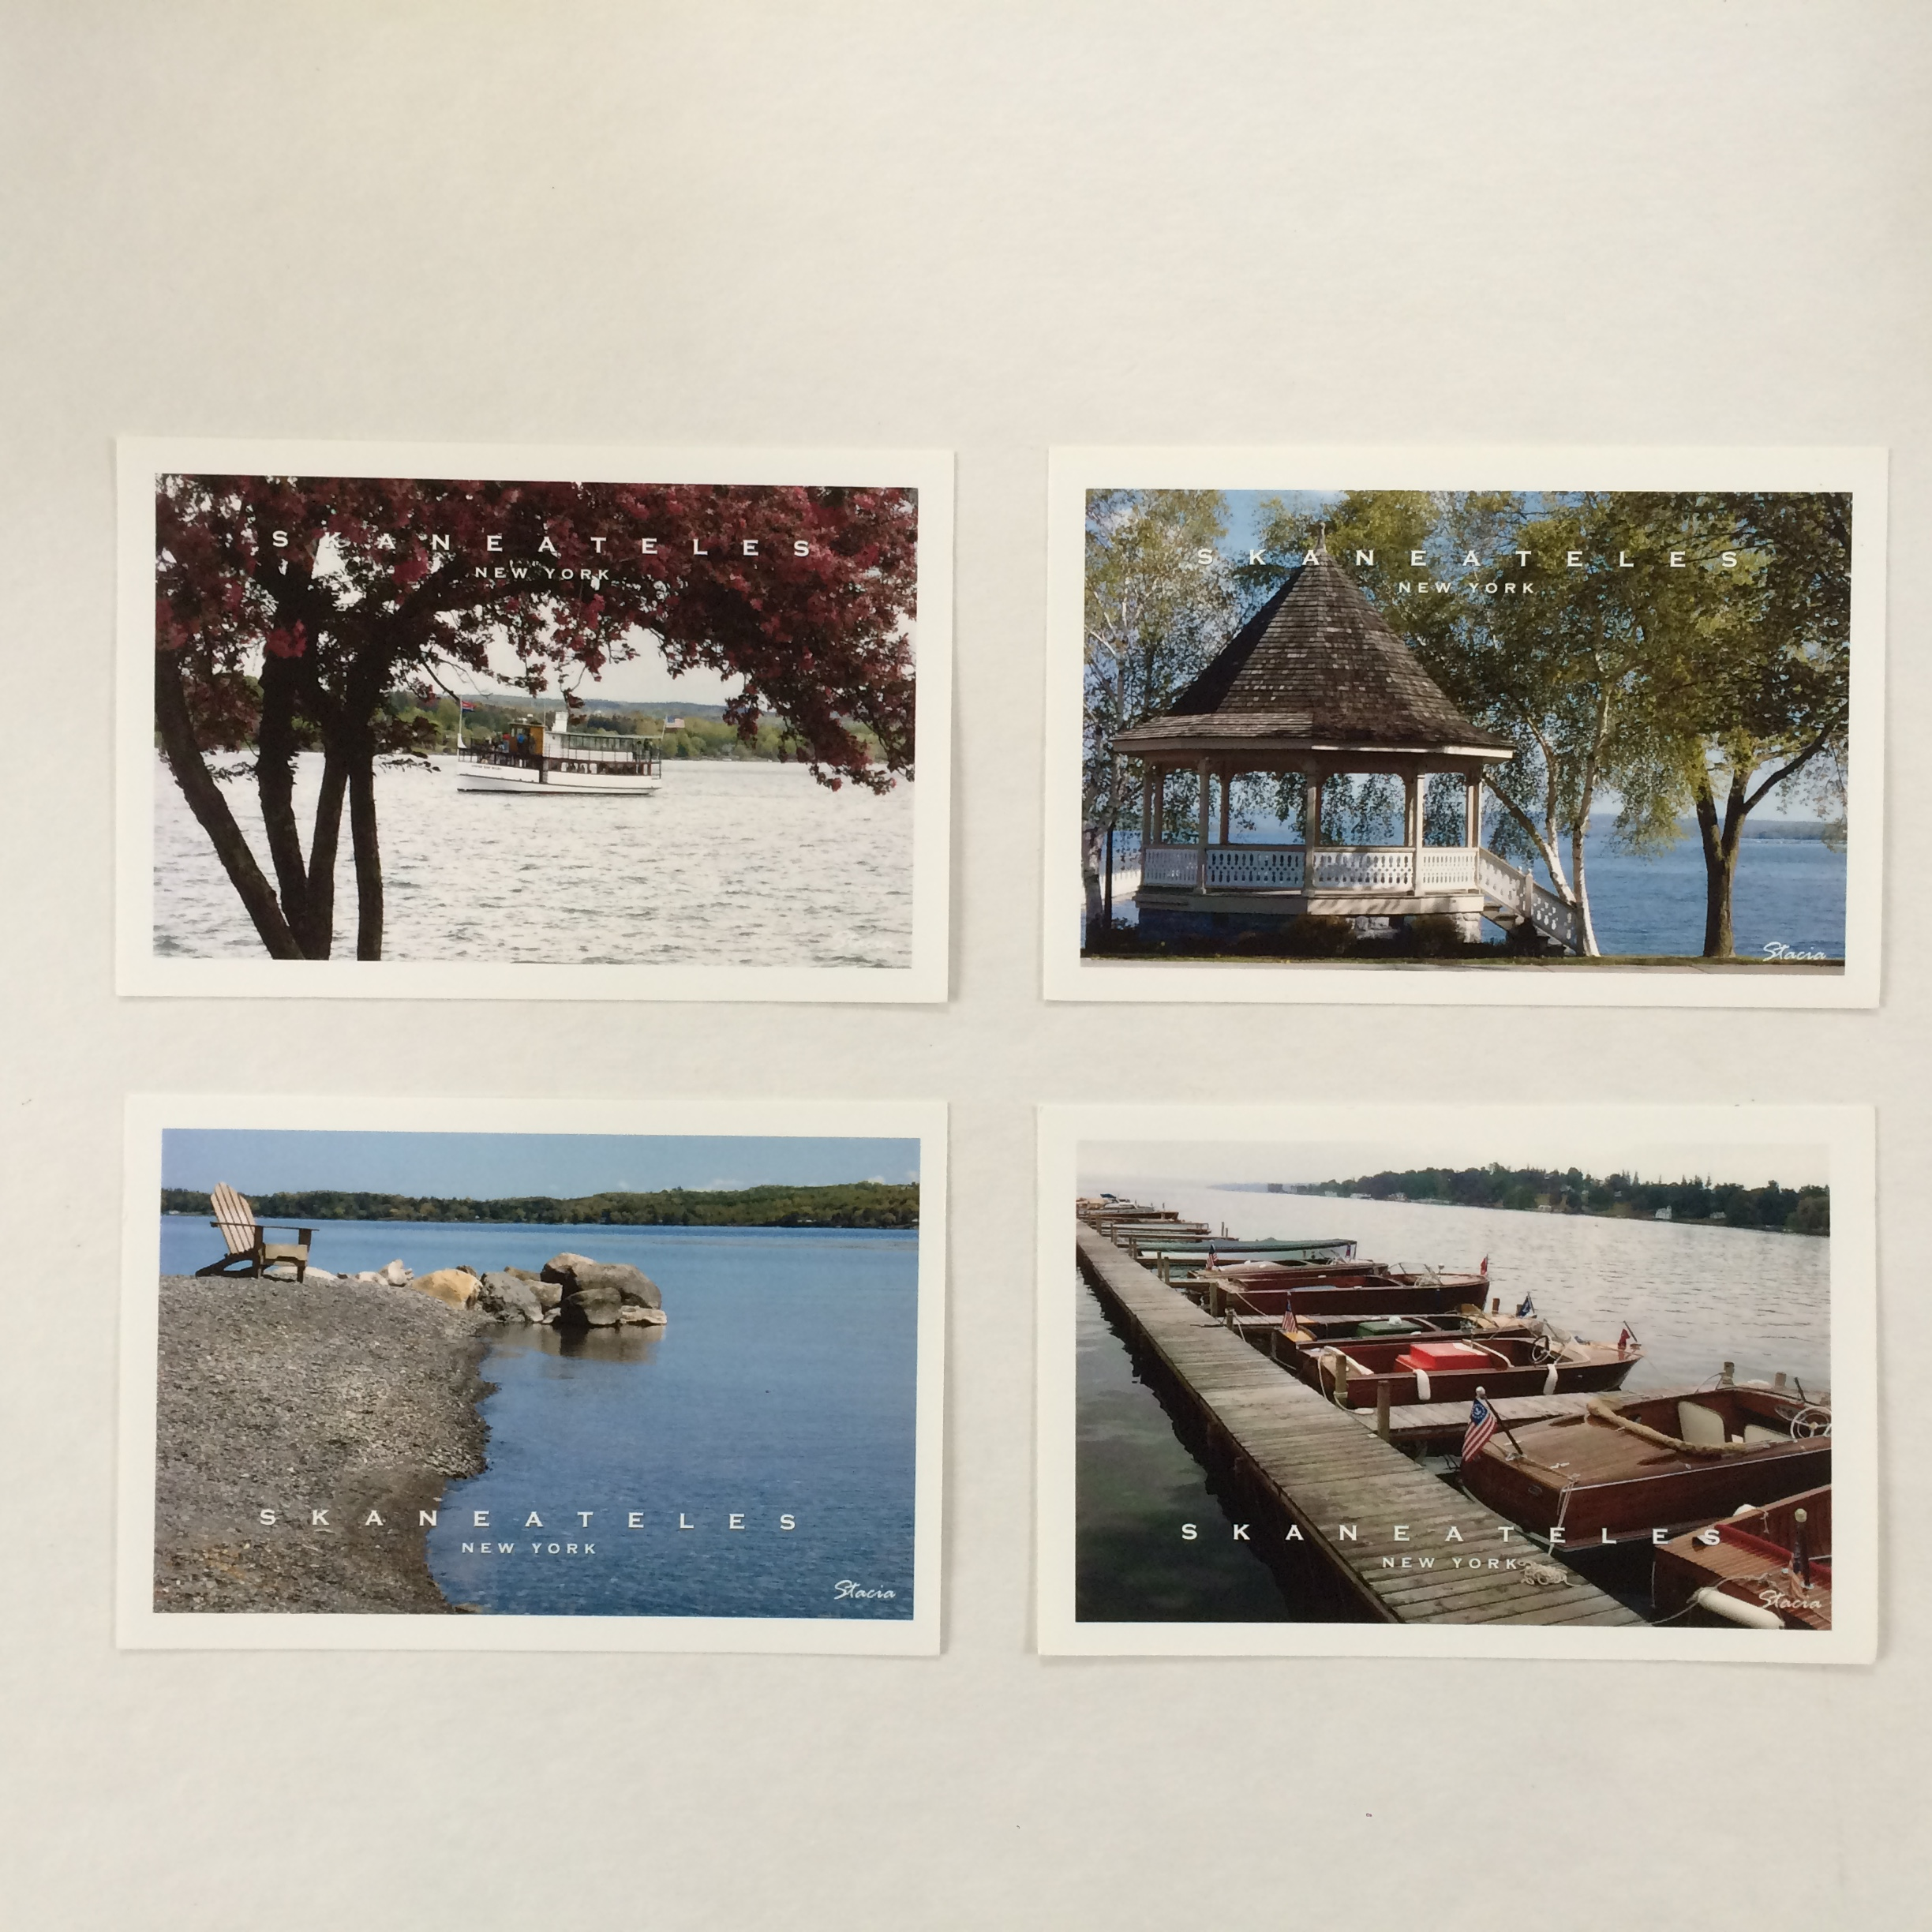 Skaneateles Postcards